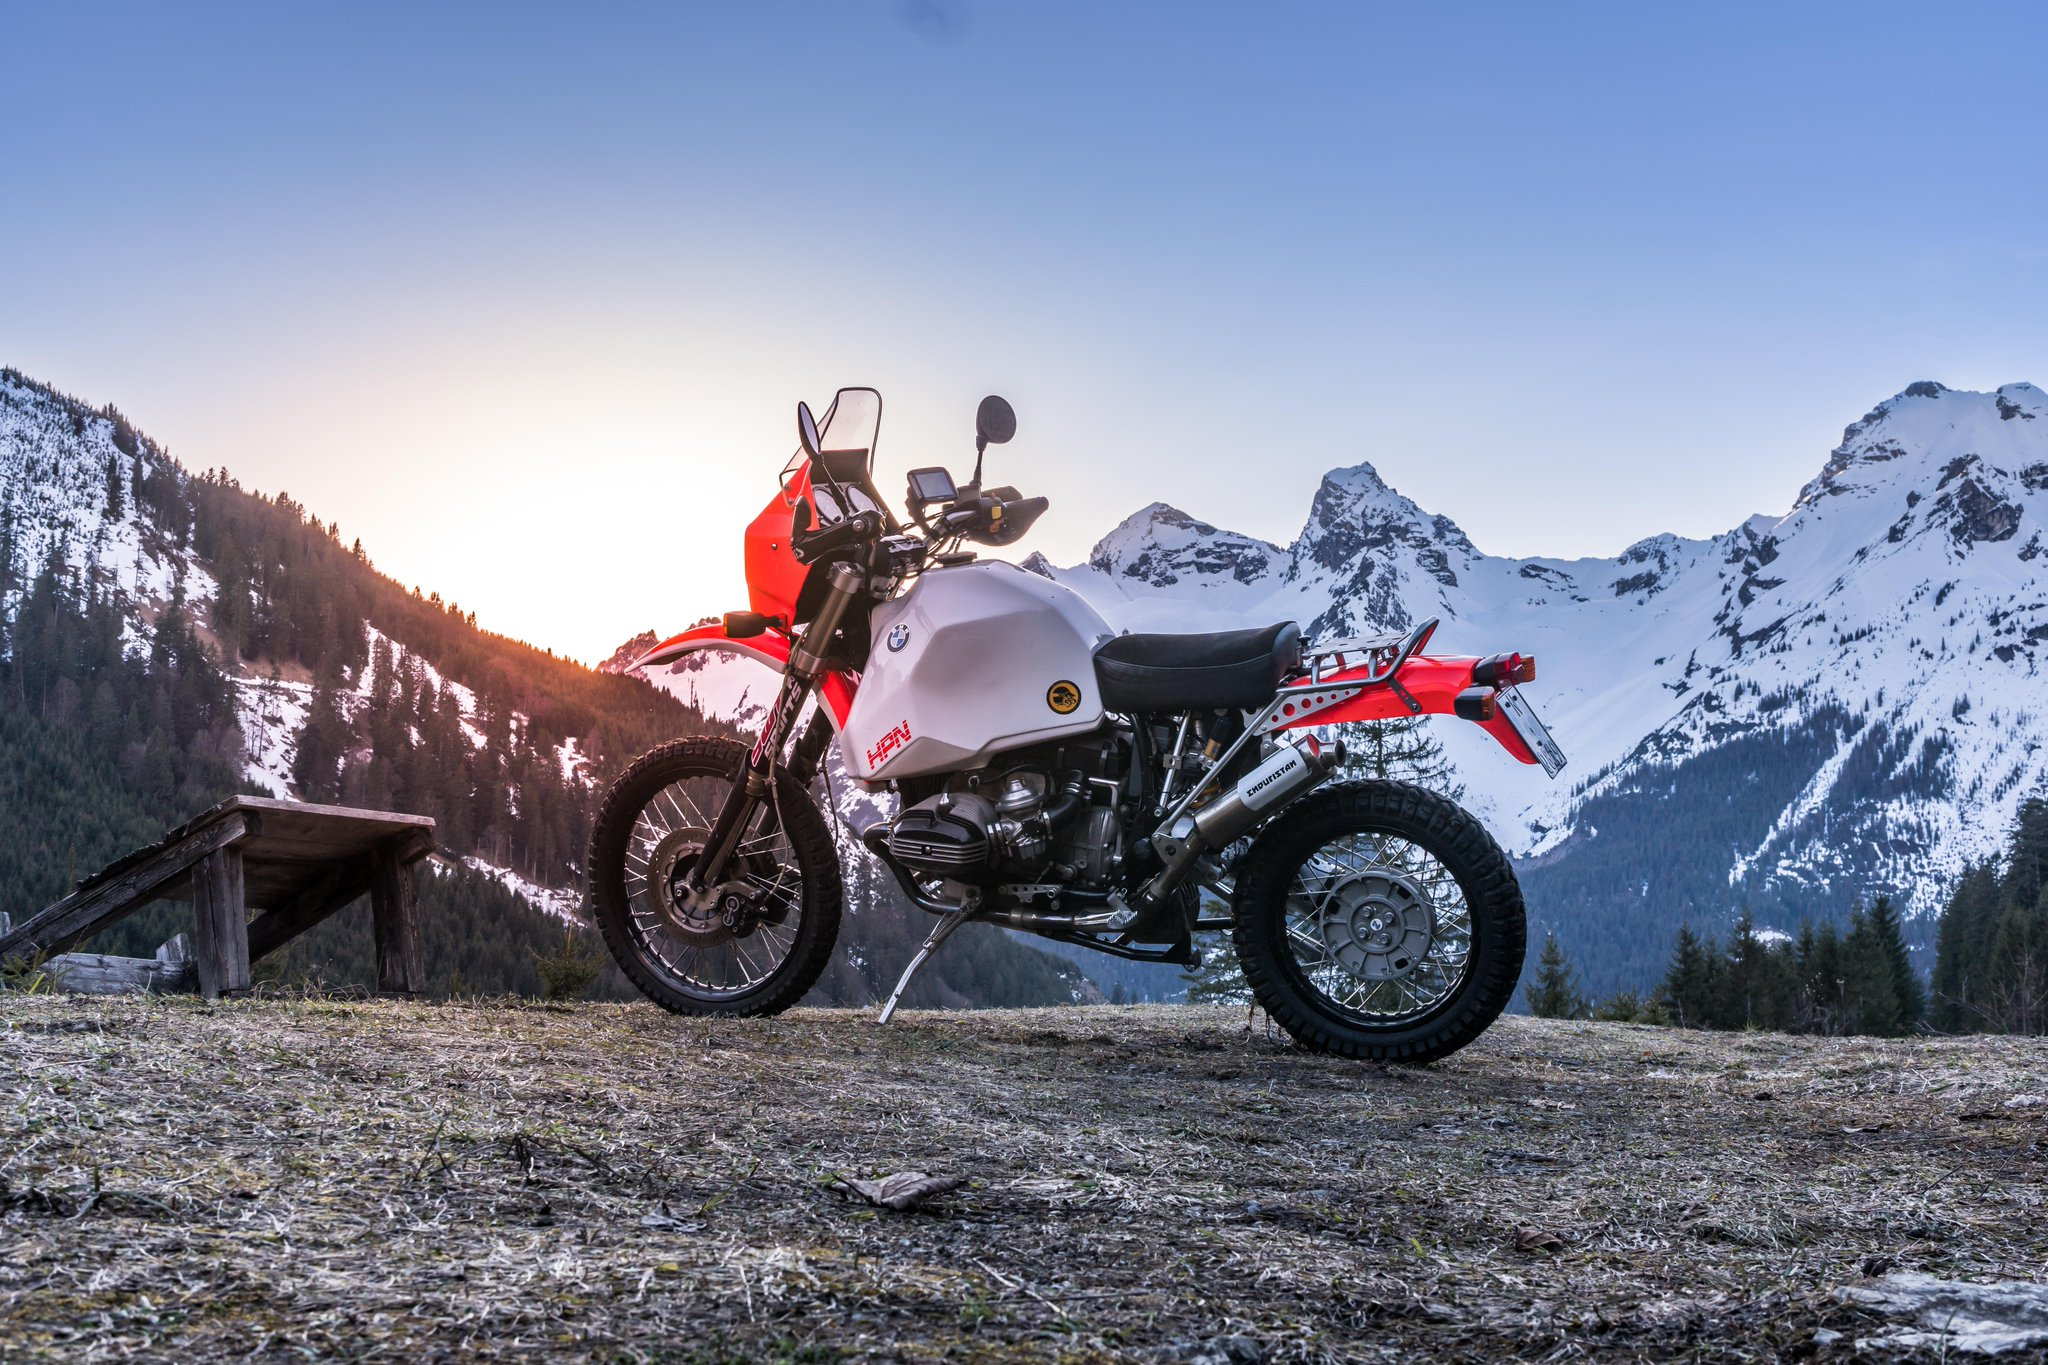 Just start the engine, everything goes on reset. You get a fresh, and a brand new adventure, every single time you start your #bmwmotorrad.  Who loves to ride in the fresh alpine air?  Thanks for taking us on the journey @Gravelscout_HPN https://t.co/i60jxo5qvC